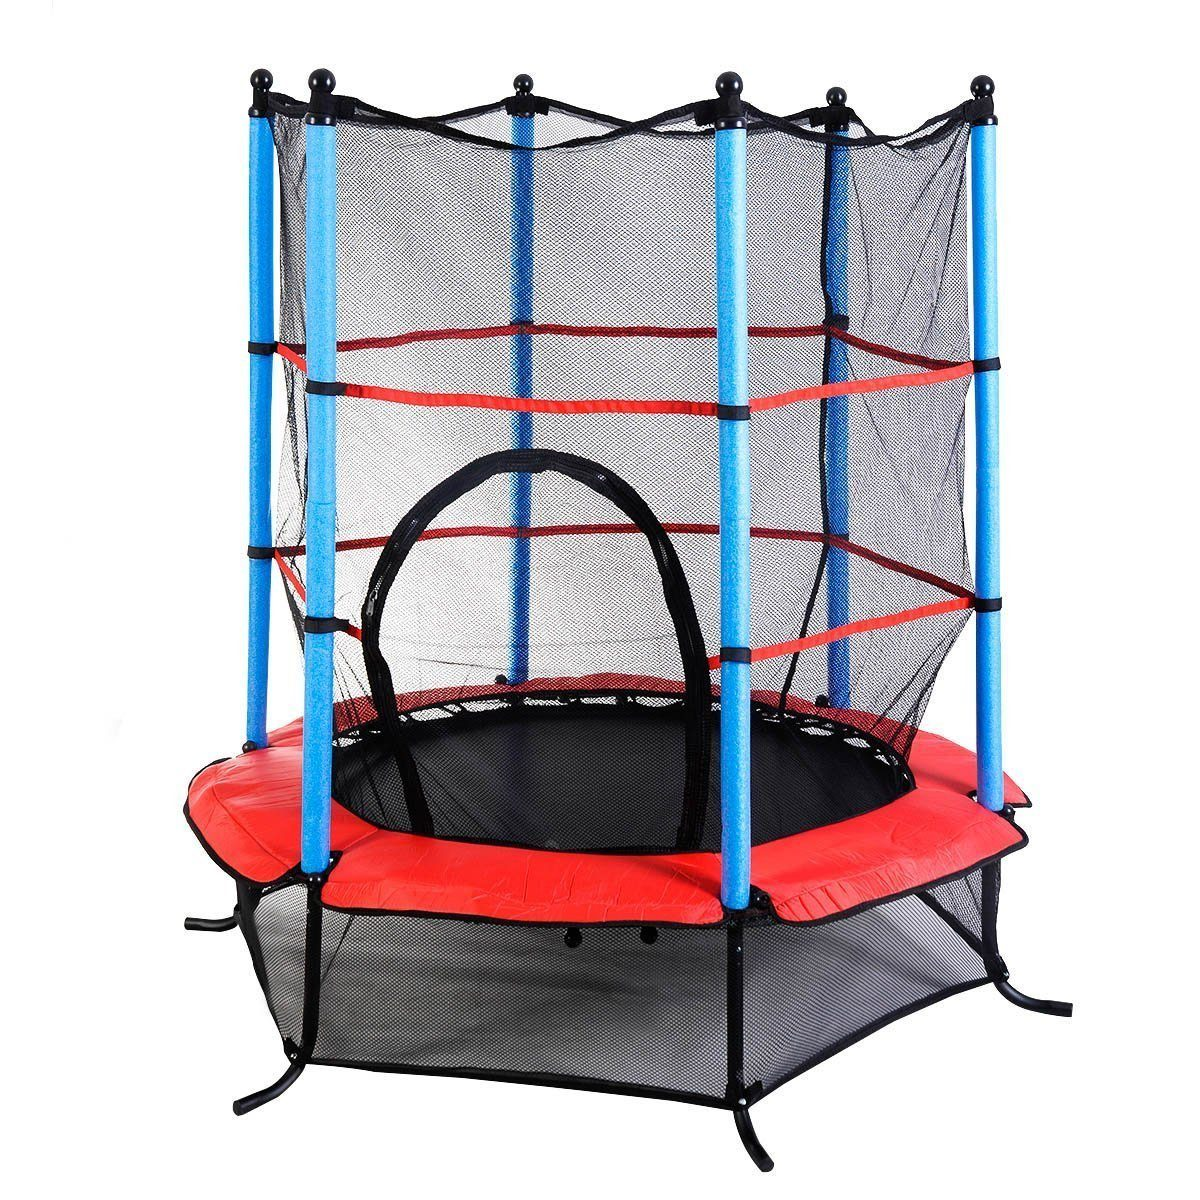 giantex-exercise-55-inch-round-kids-jumping-trampoline